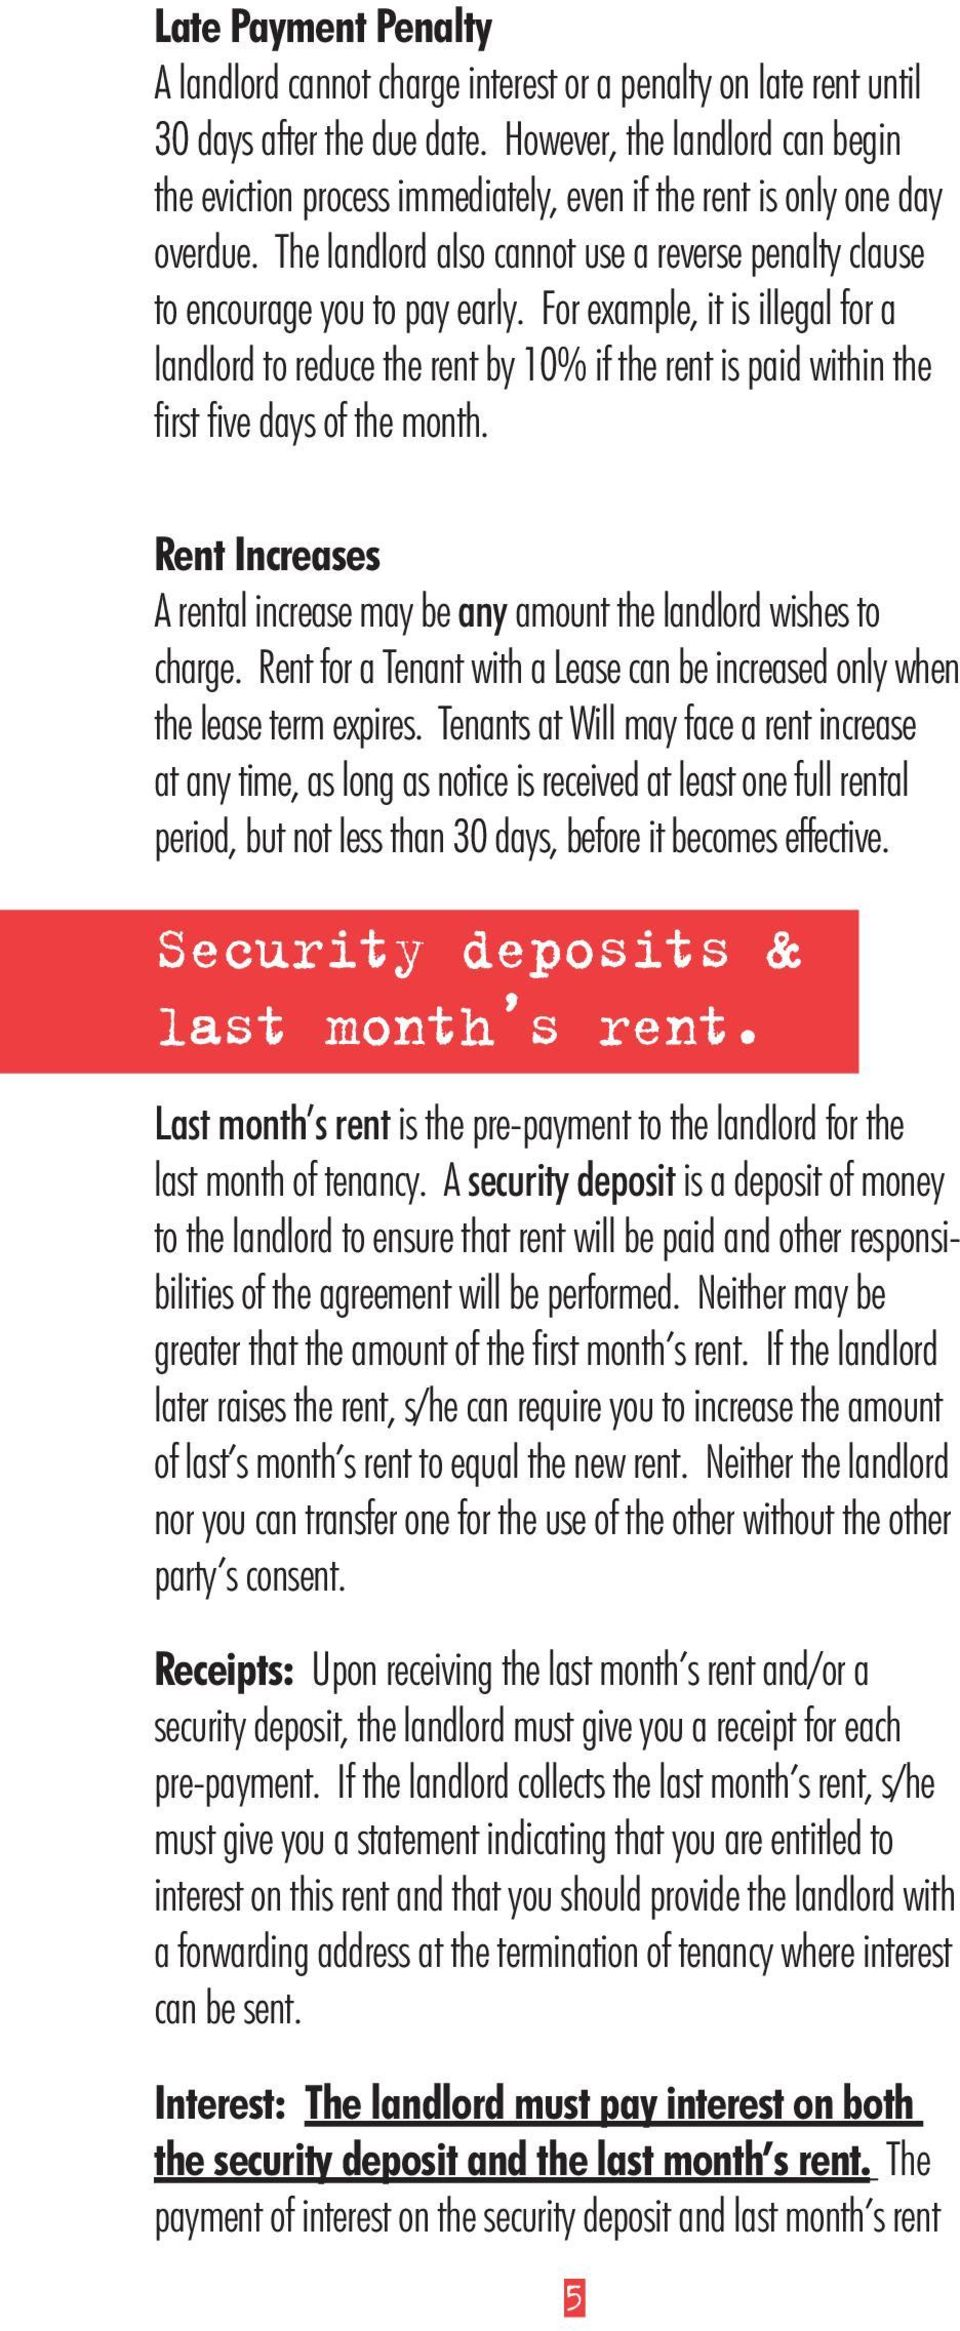 For example, it is illegal for a landlord to reduce the rent by 10% if the rent is paid within the first five days of the month.